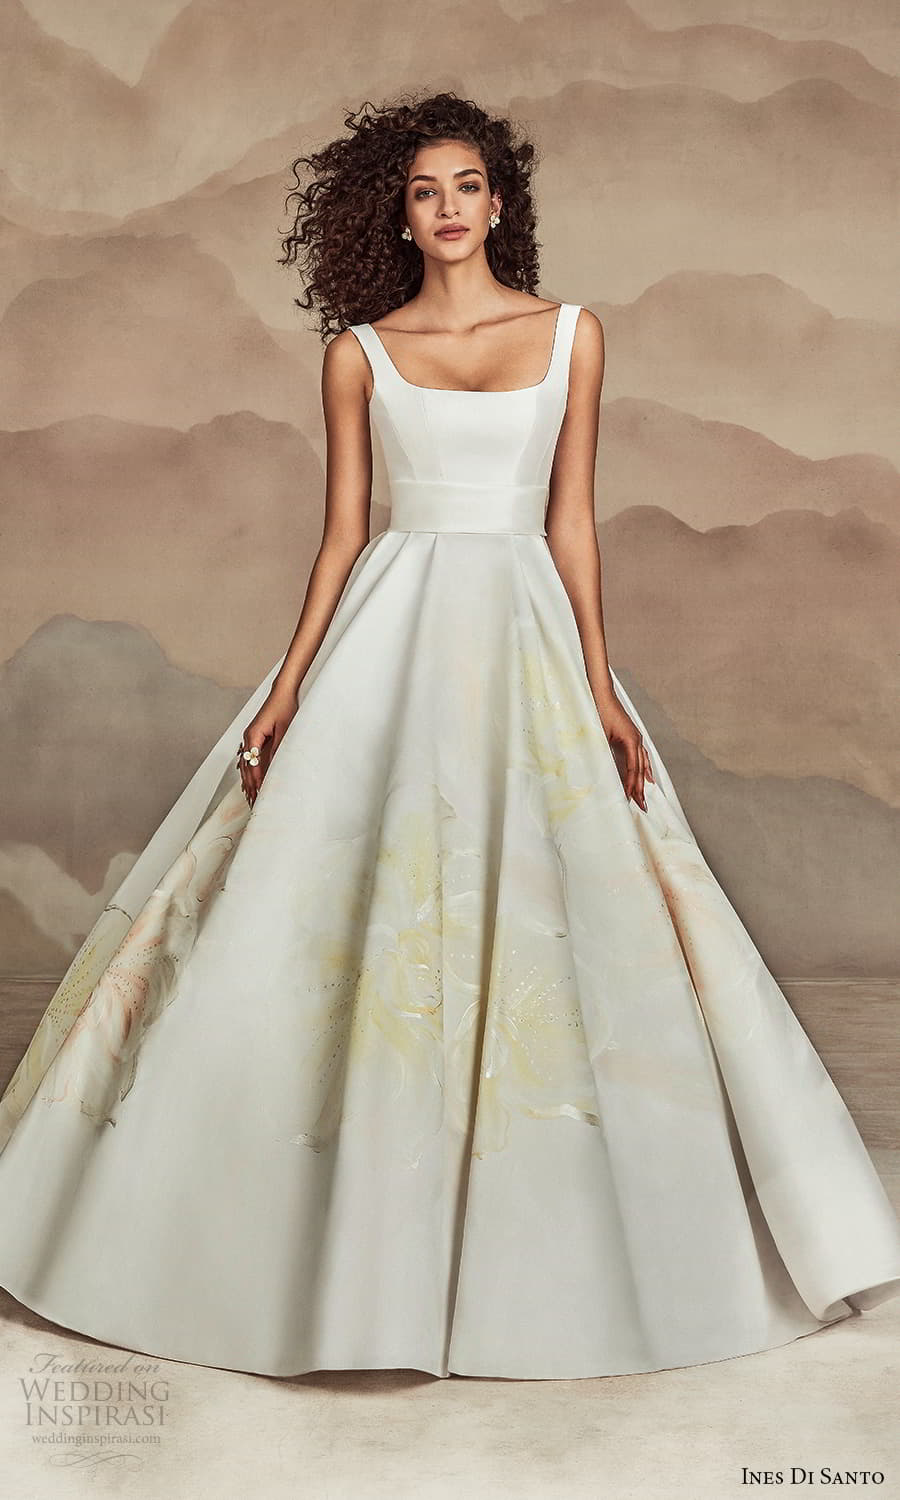 ines di santo spring 2022 bridal sleeveless straps square neckline clean minimalist a line ball gown wedding dress chapel train (14) mv